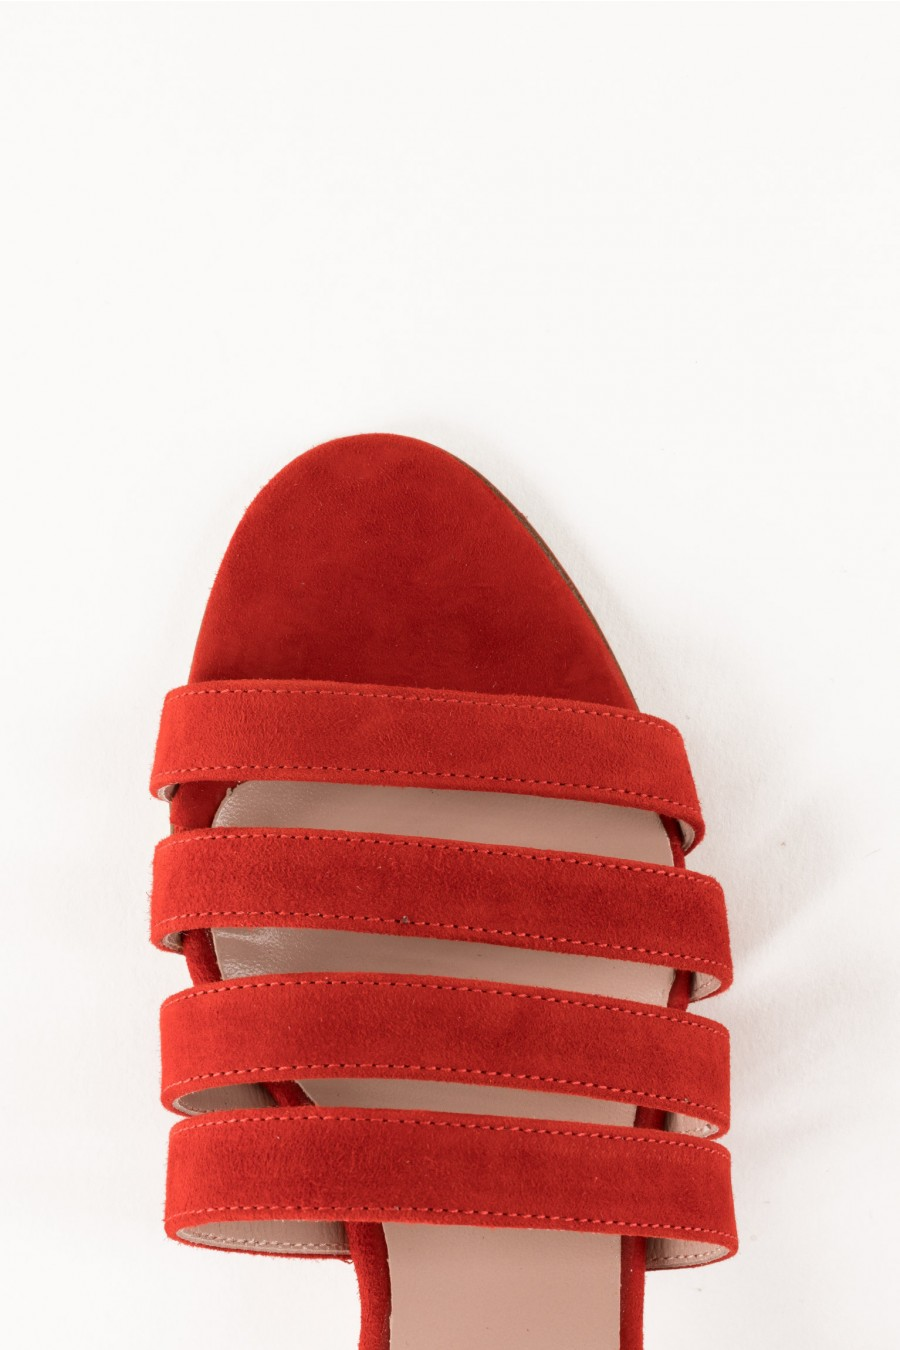 Suede leather red sandals